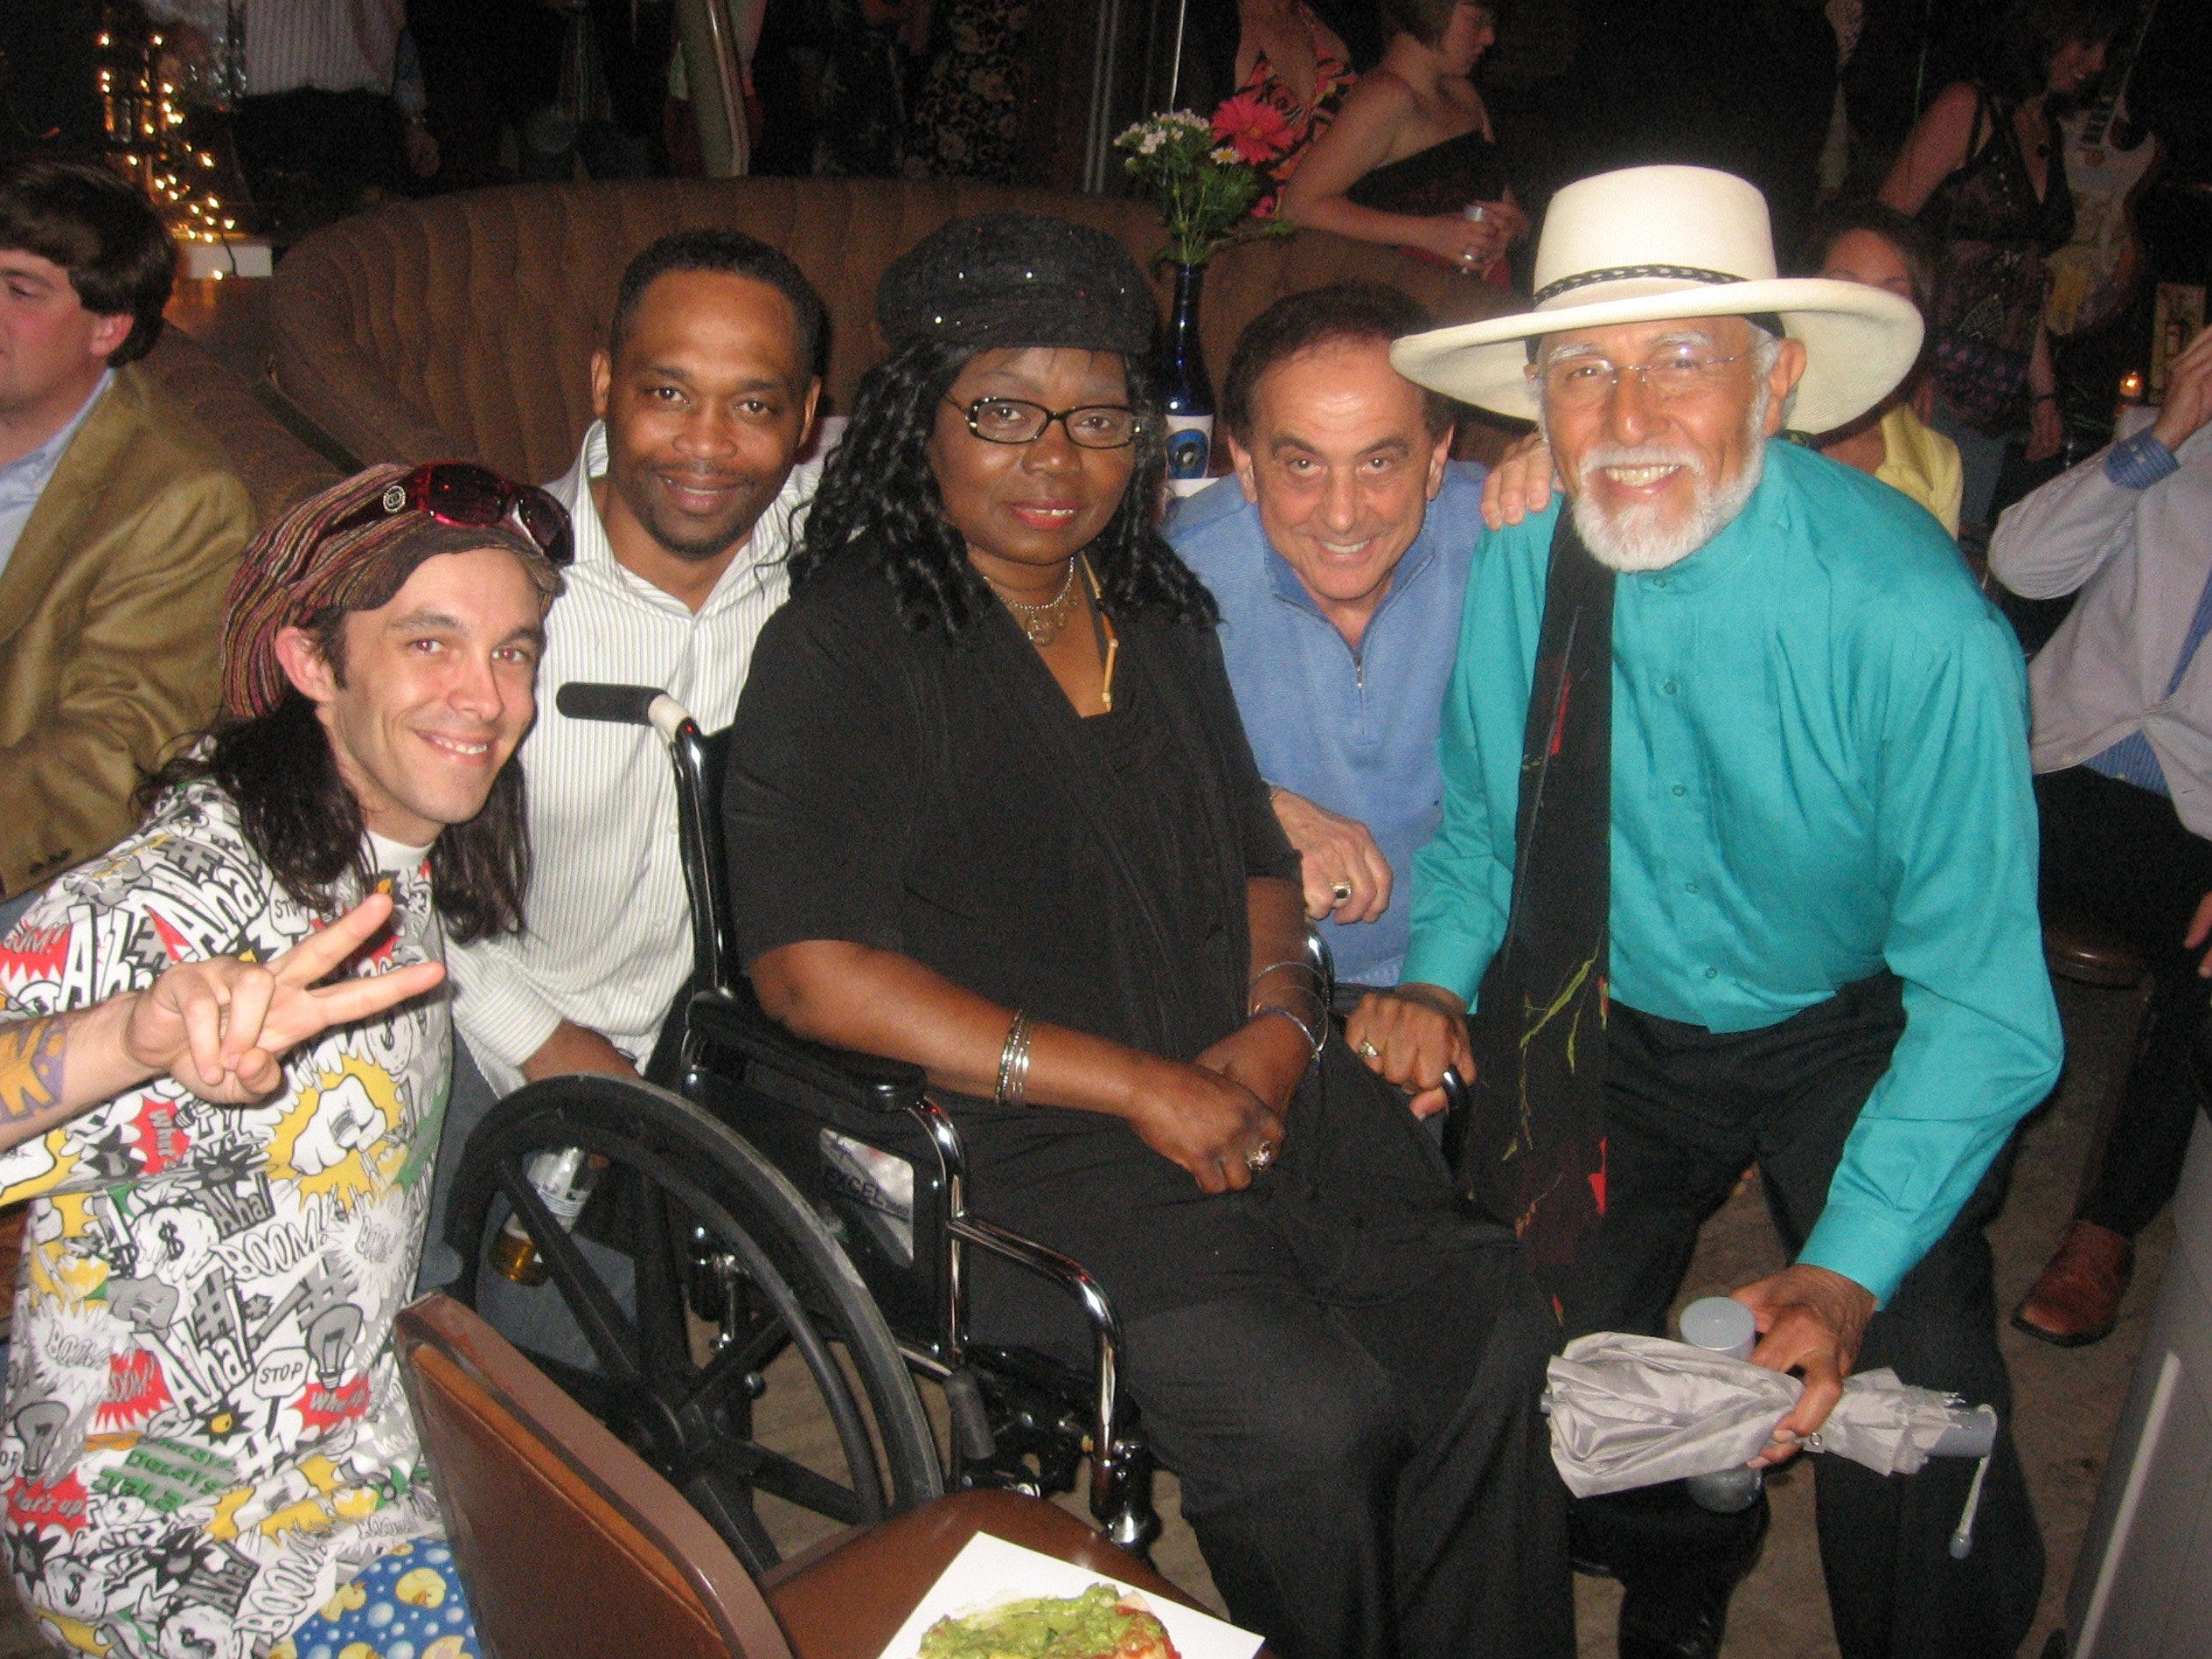 """May 5, 2009 - Memphis music was well represented at The Blues Ball Spring Auction. Guests included, from left, Muck Sticky, Ken Moseley, Ruby Wilson, George Klein and Sam """"The Sham"""" Samudio."""